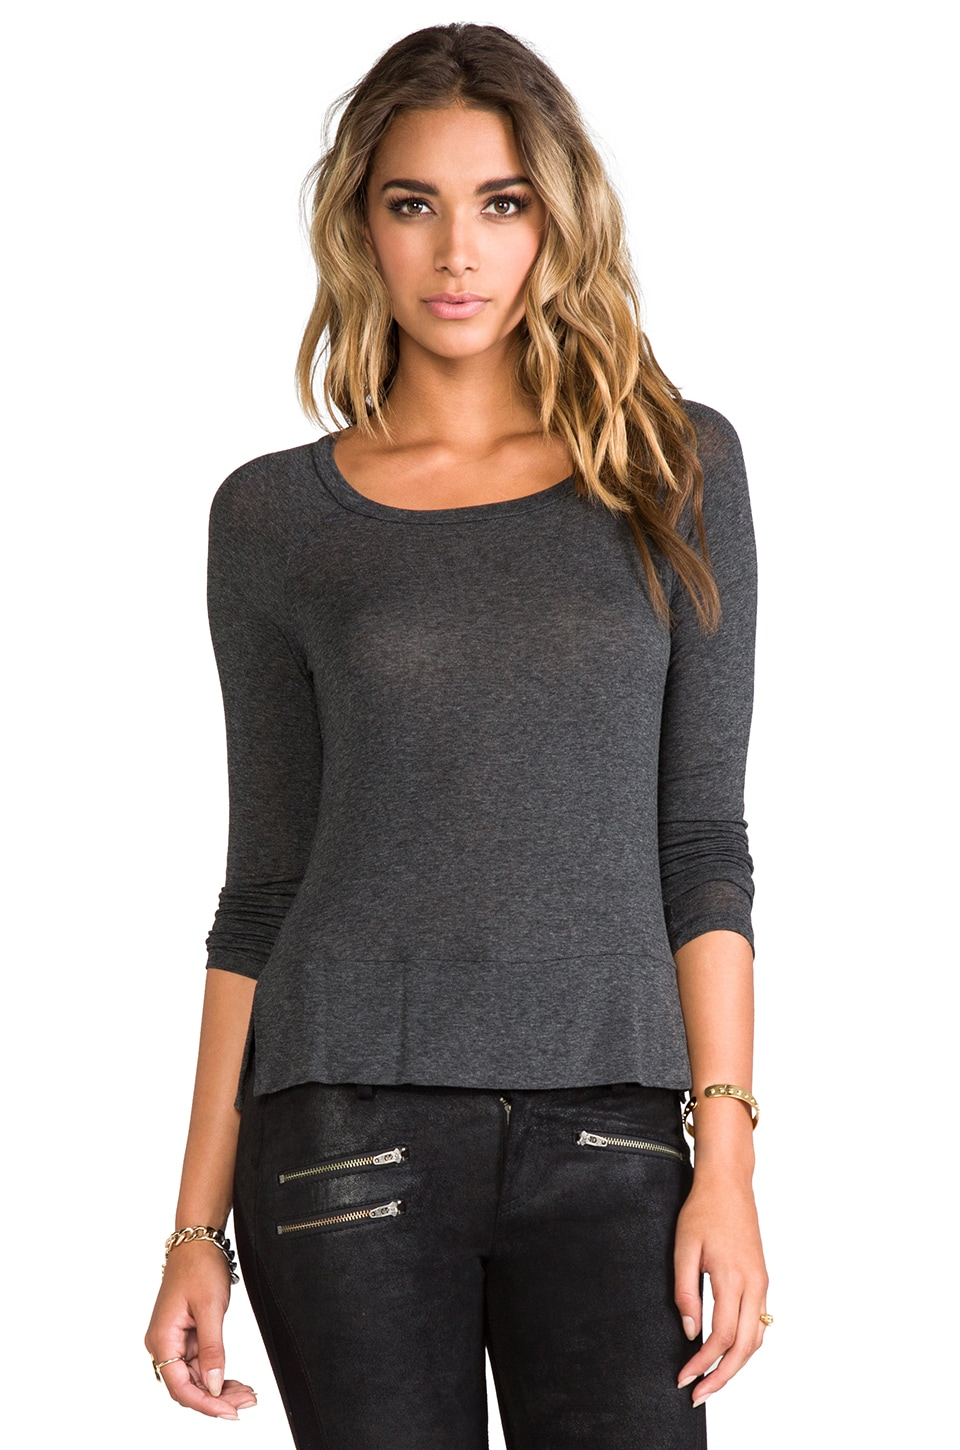 Splendid Drapey Lux Tee in Charcoal